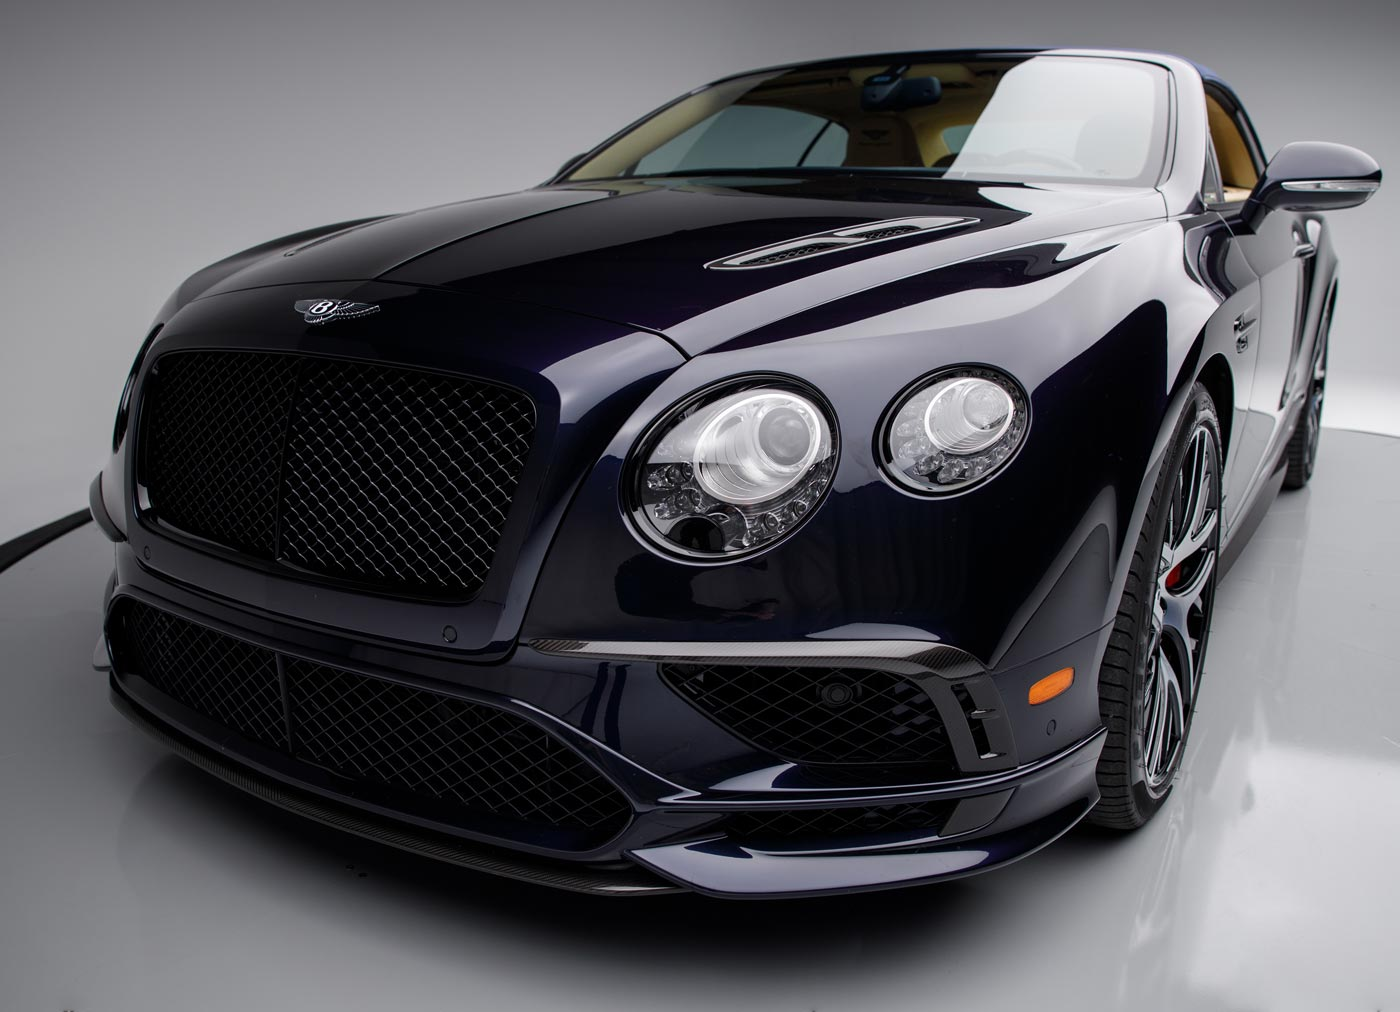 2018 Bentley Supersports Convertible - The JBS Collection